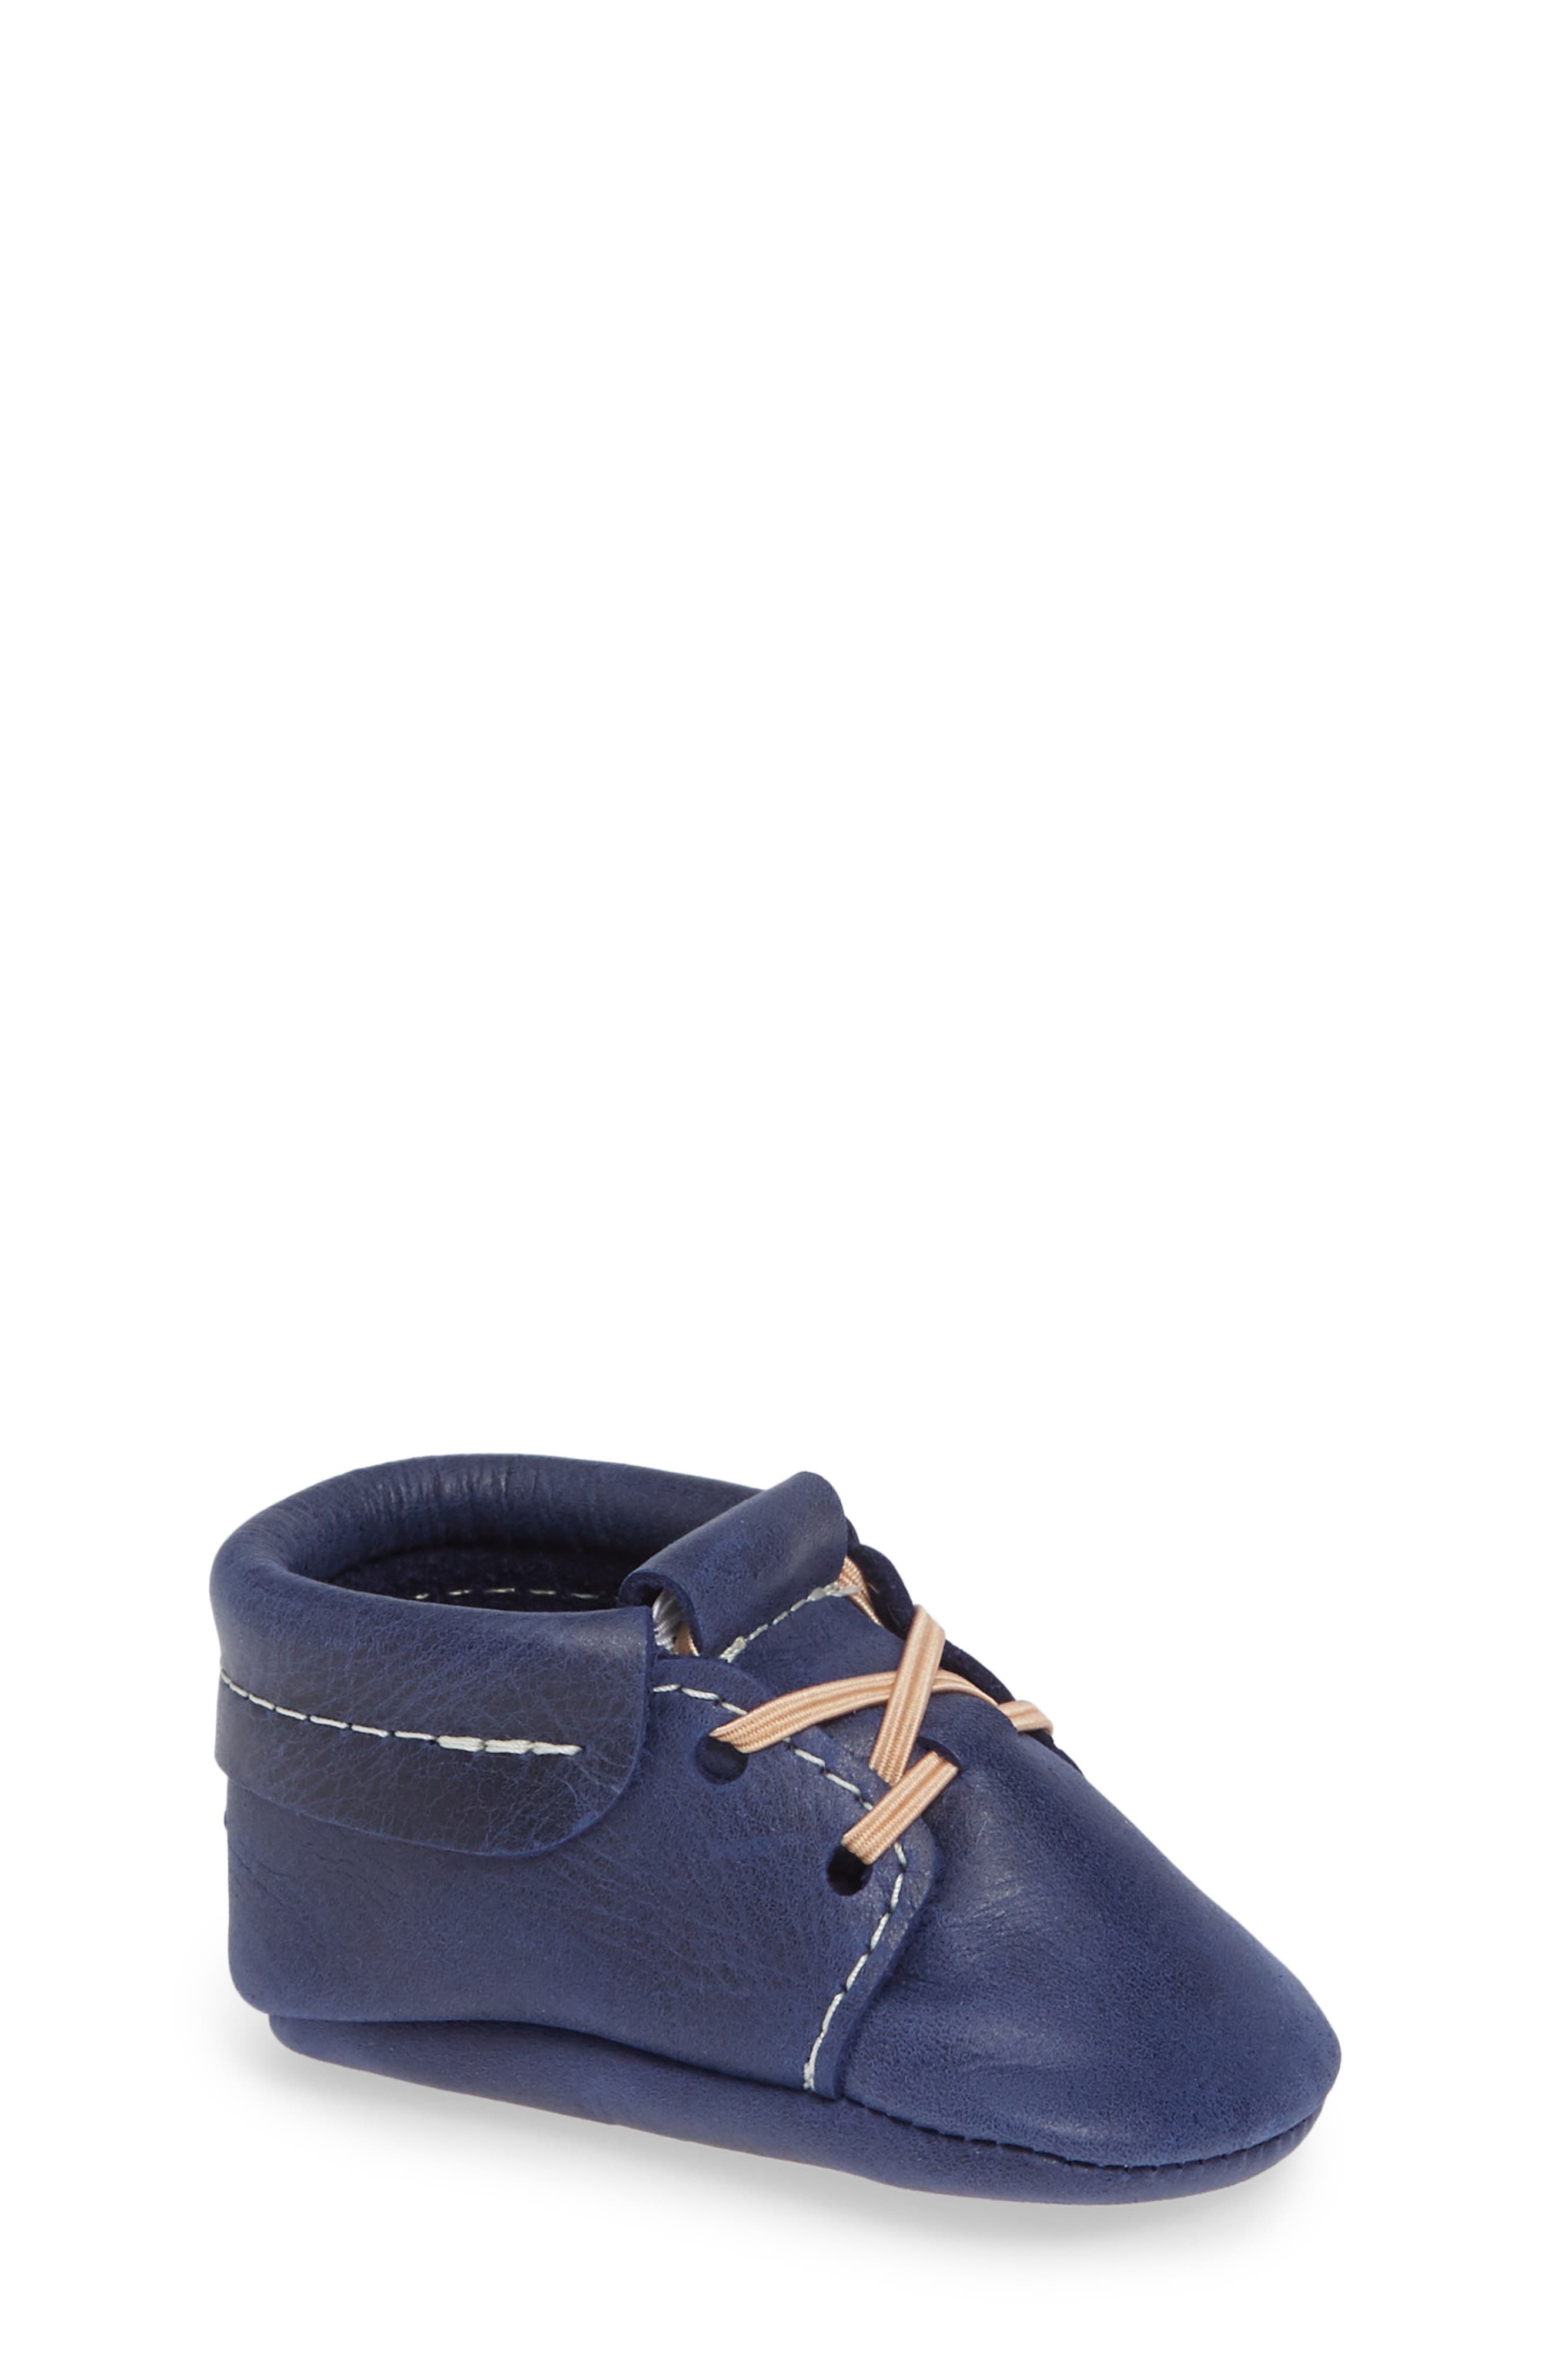 City Leather Moccasin,                             Main thumbnail 1, color,                             410